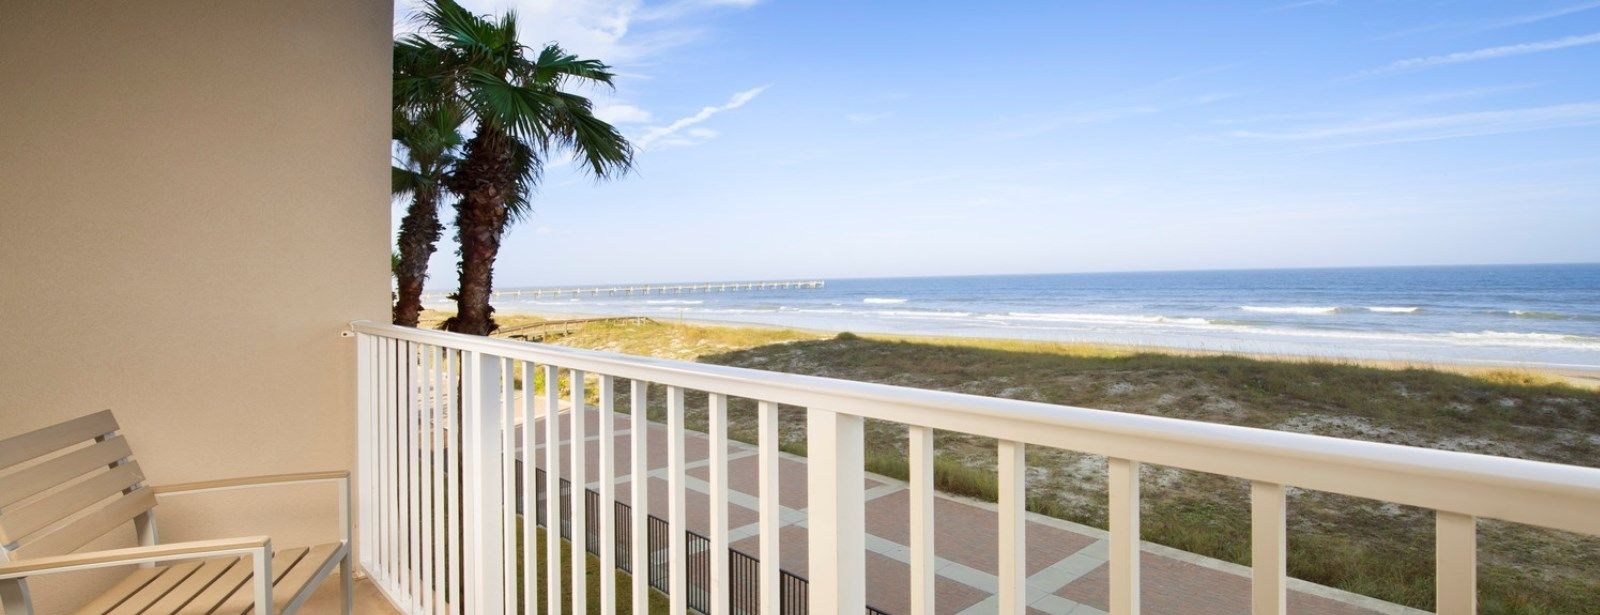 Jacksonville Beach Accommodations - King Suite